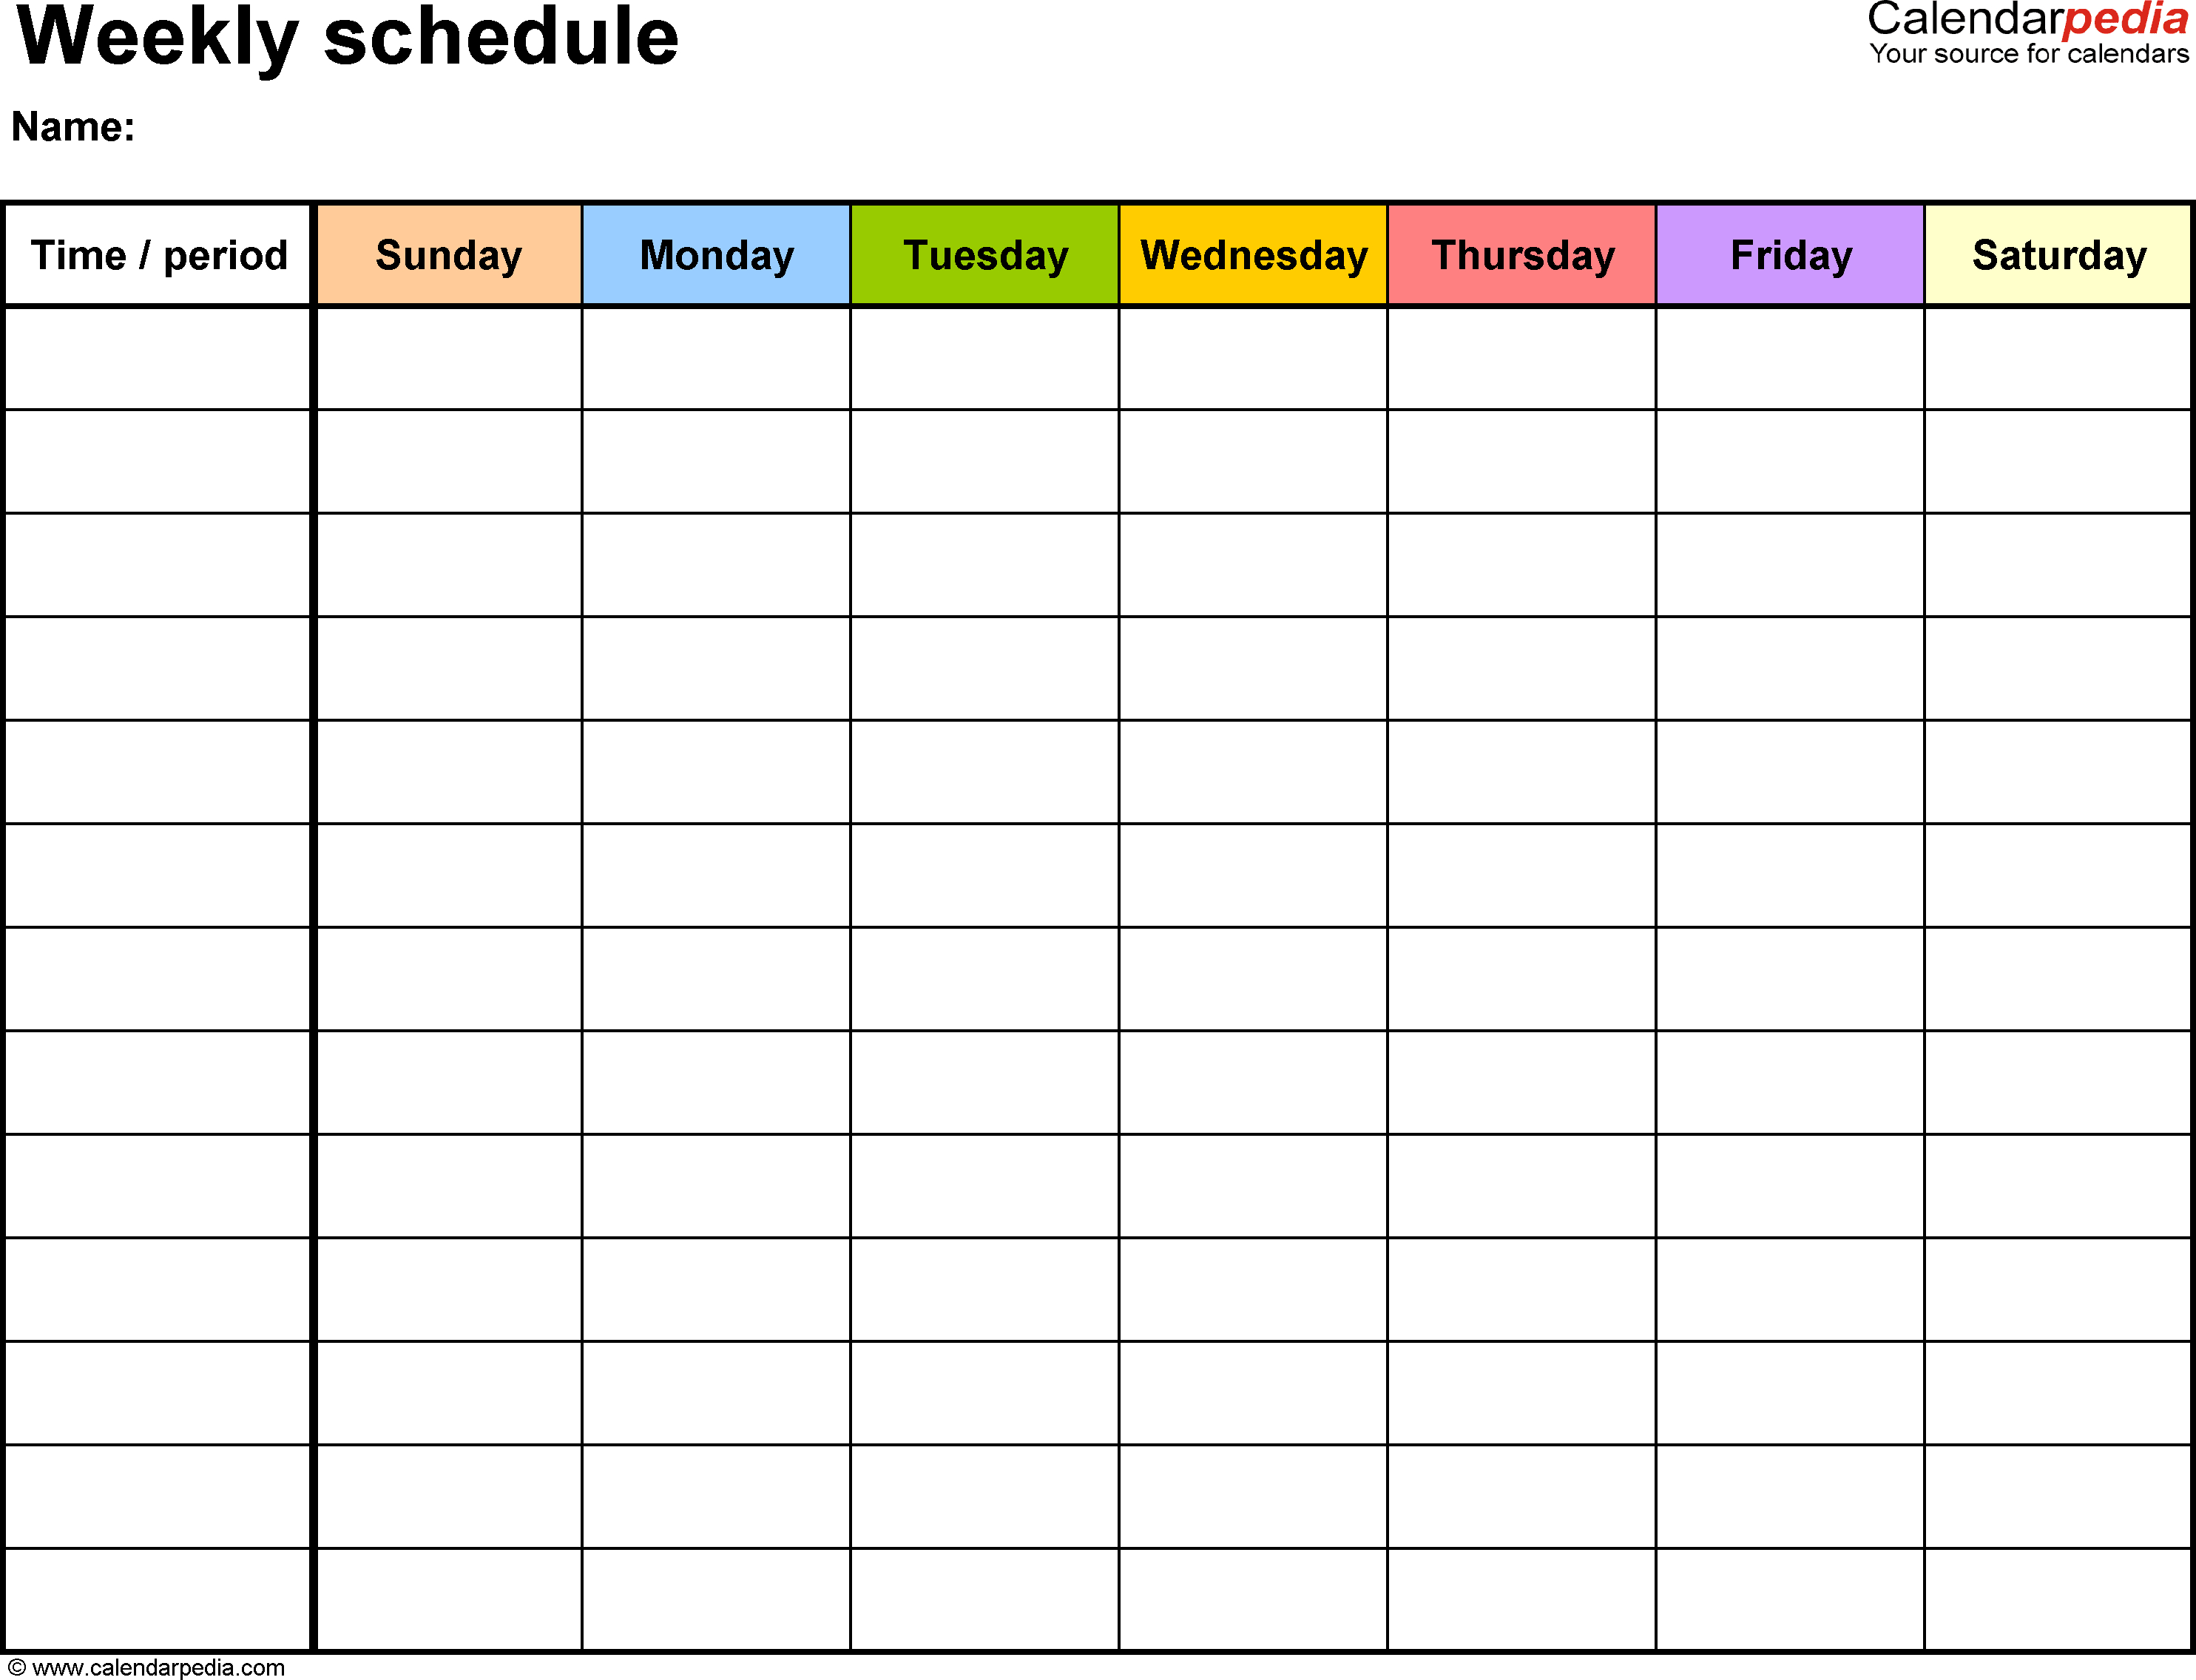 Free Weekly Schedule Templates For Excel - 18 Templates Blank Monday To Friday Timetable